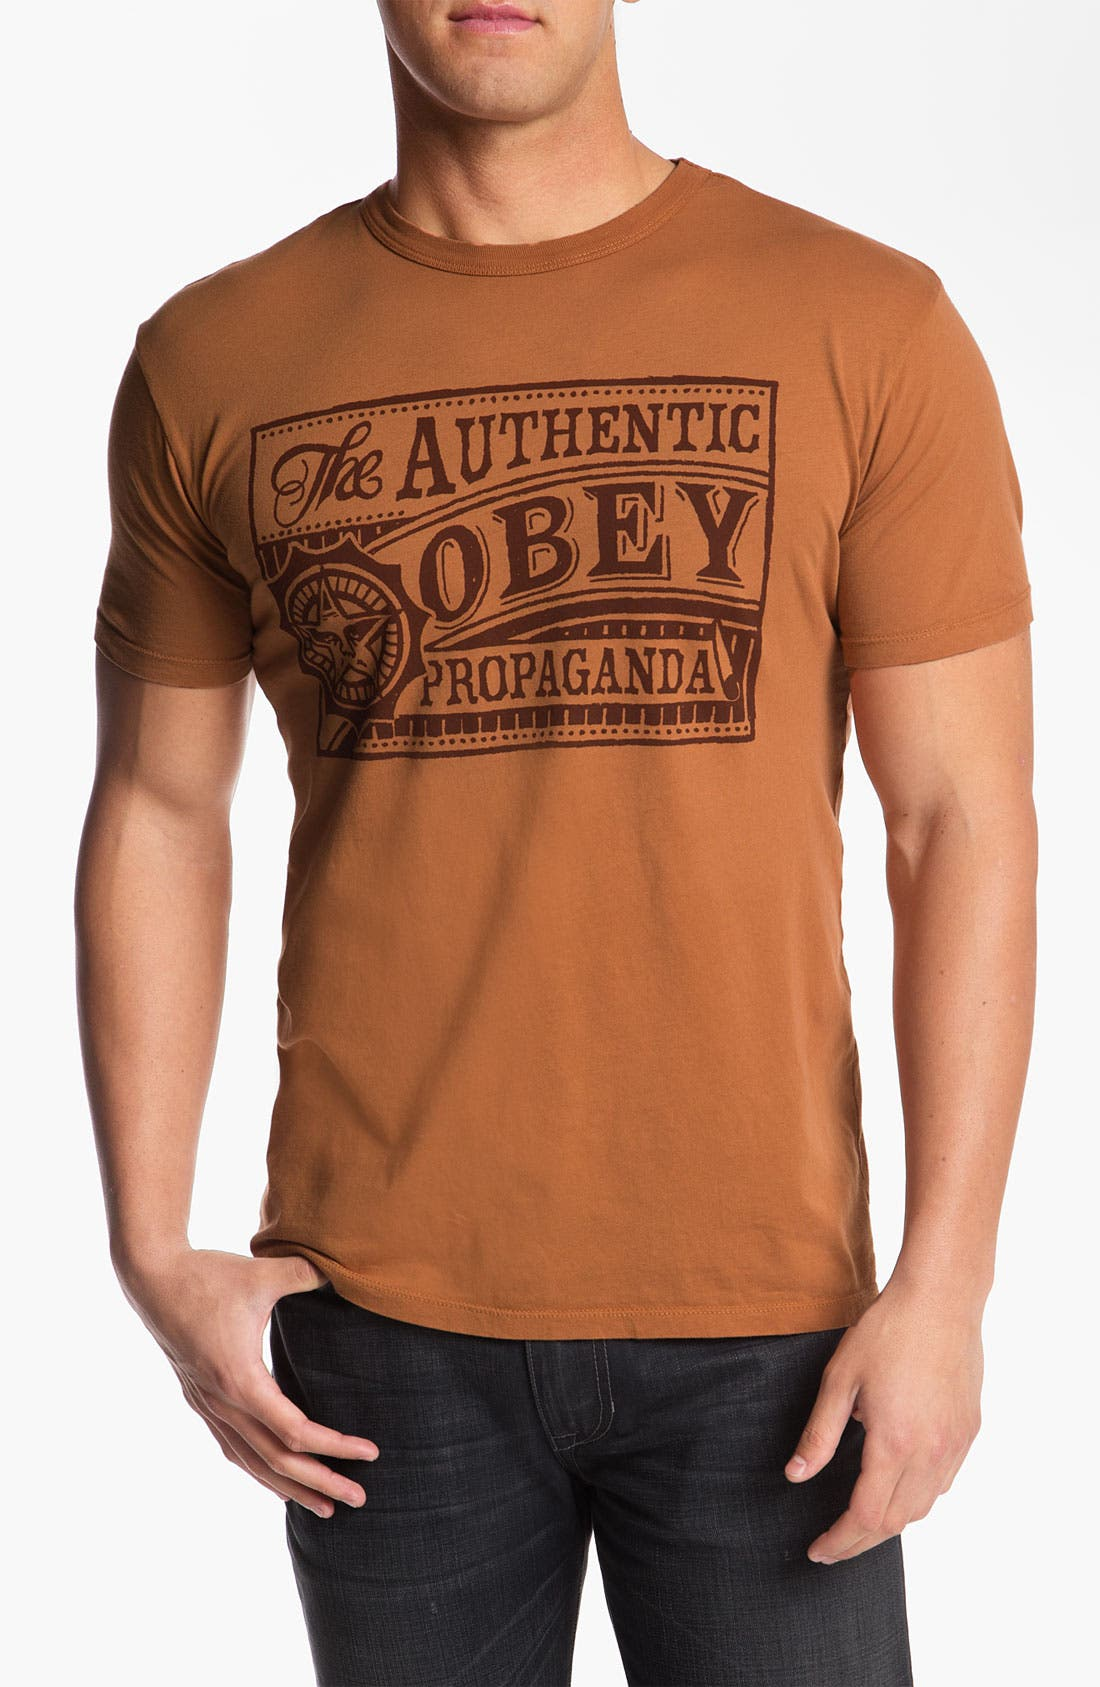 Alternate Image 1 Selected - Obey 'Authentic Obey' Graphic T-Shirt